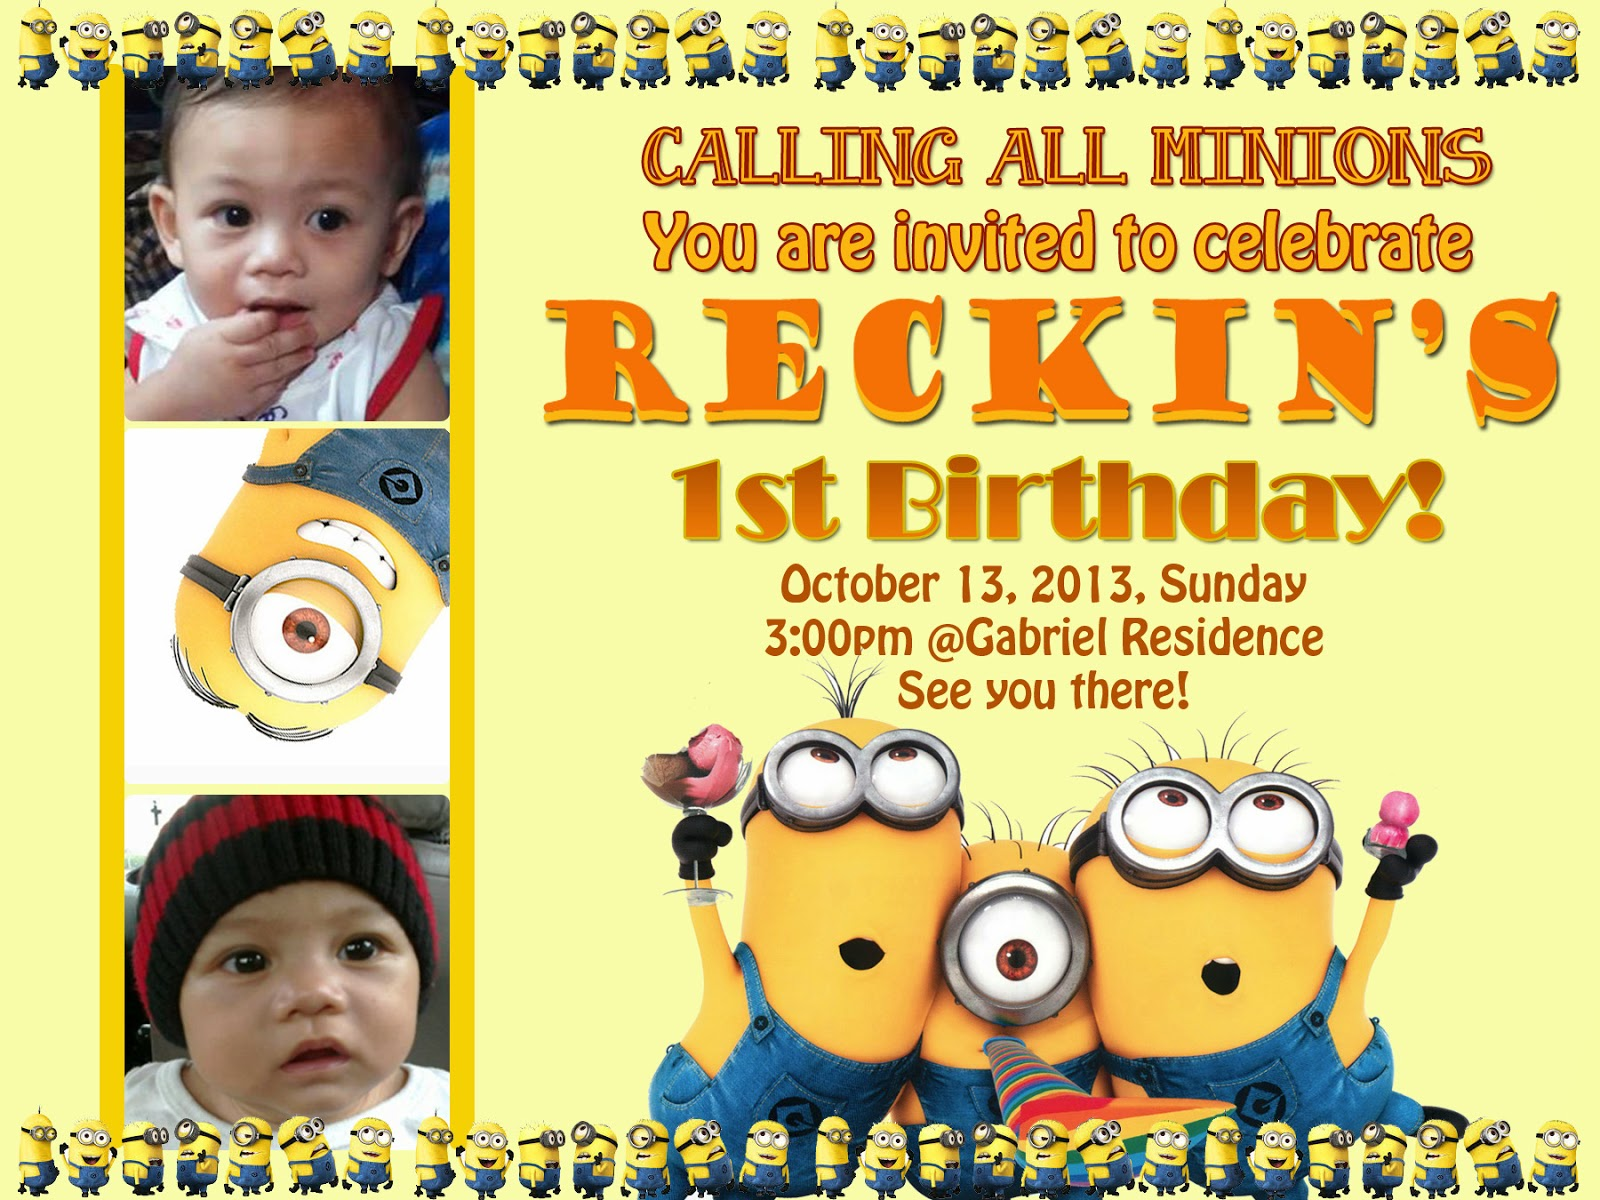 minion themed birthday invitation template ; Minion-Birthday-Party-Invitations-Templates-is-outstanding-ideas-which-can-be-applied-into-your-birthday-Invitation-18